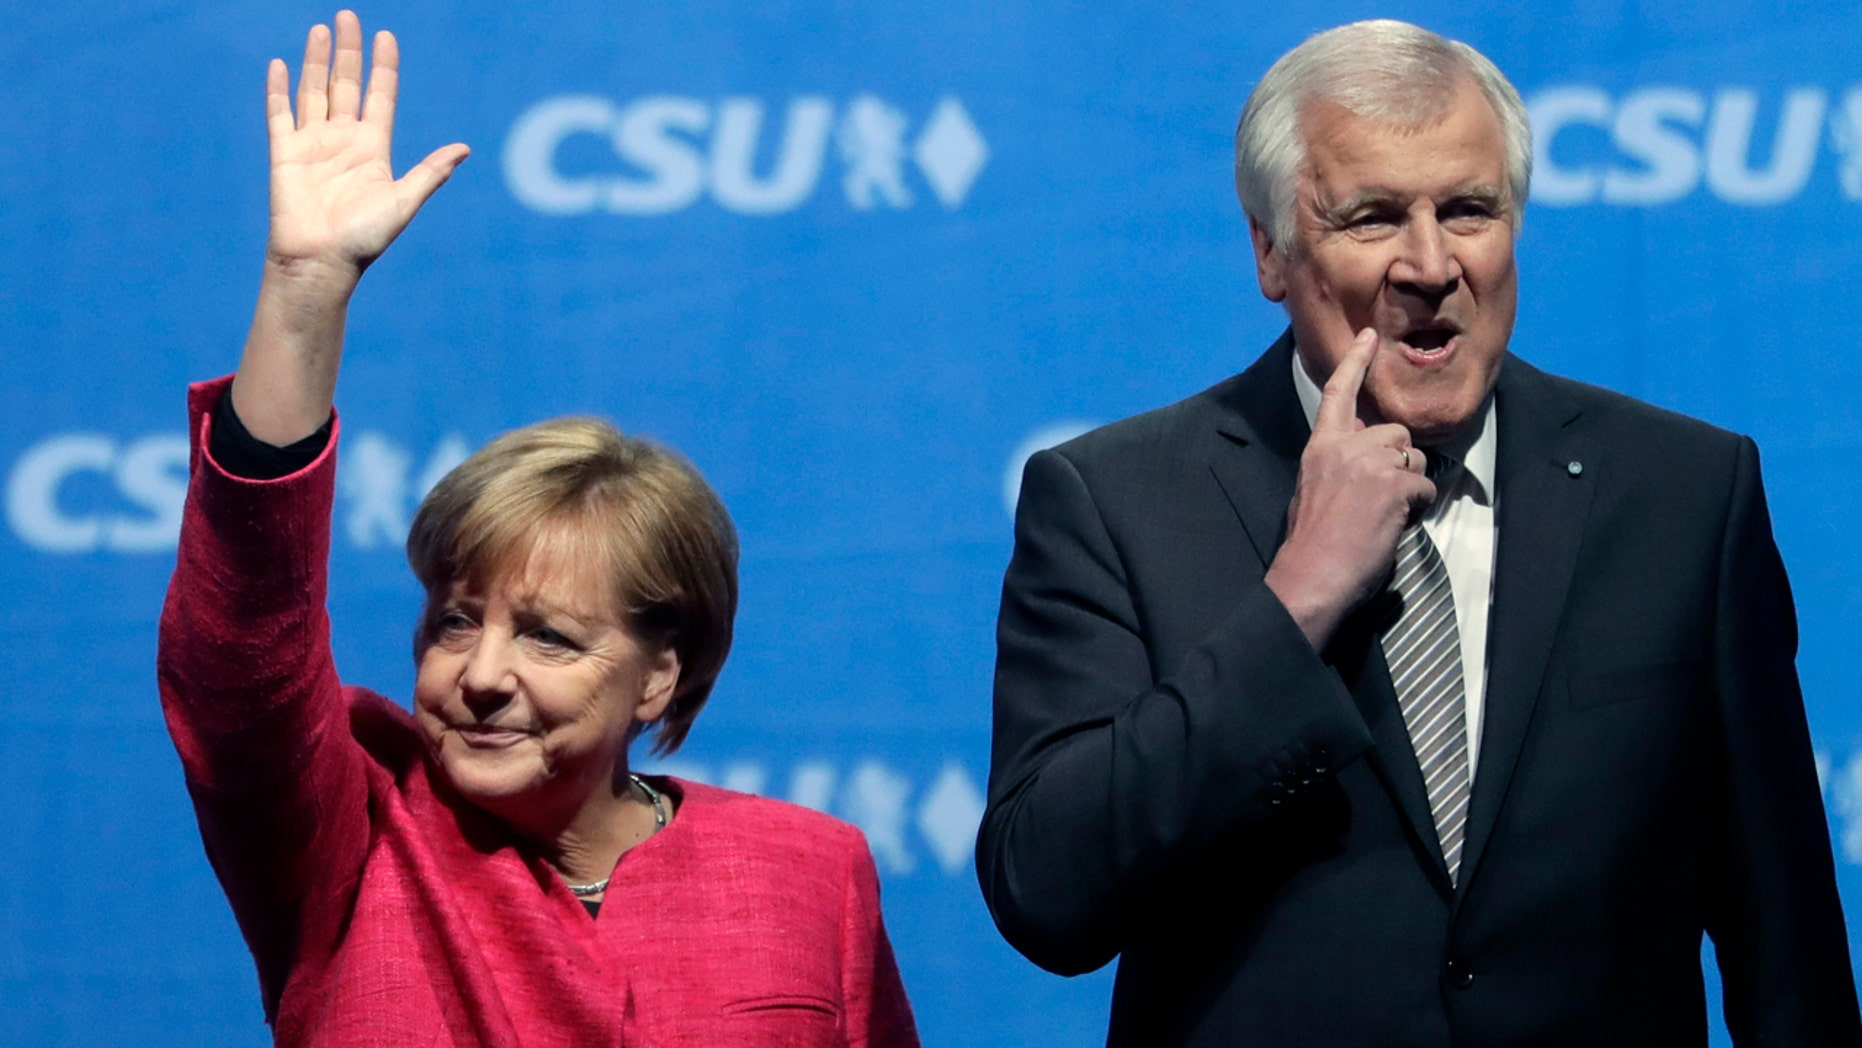 Angela Merkel and Horst Seehofer in happer times, at a September 2017 campaign rally.